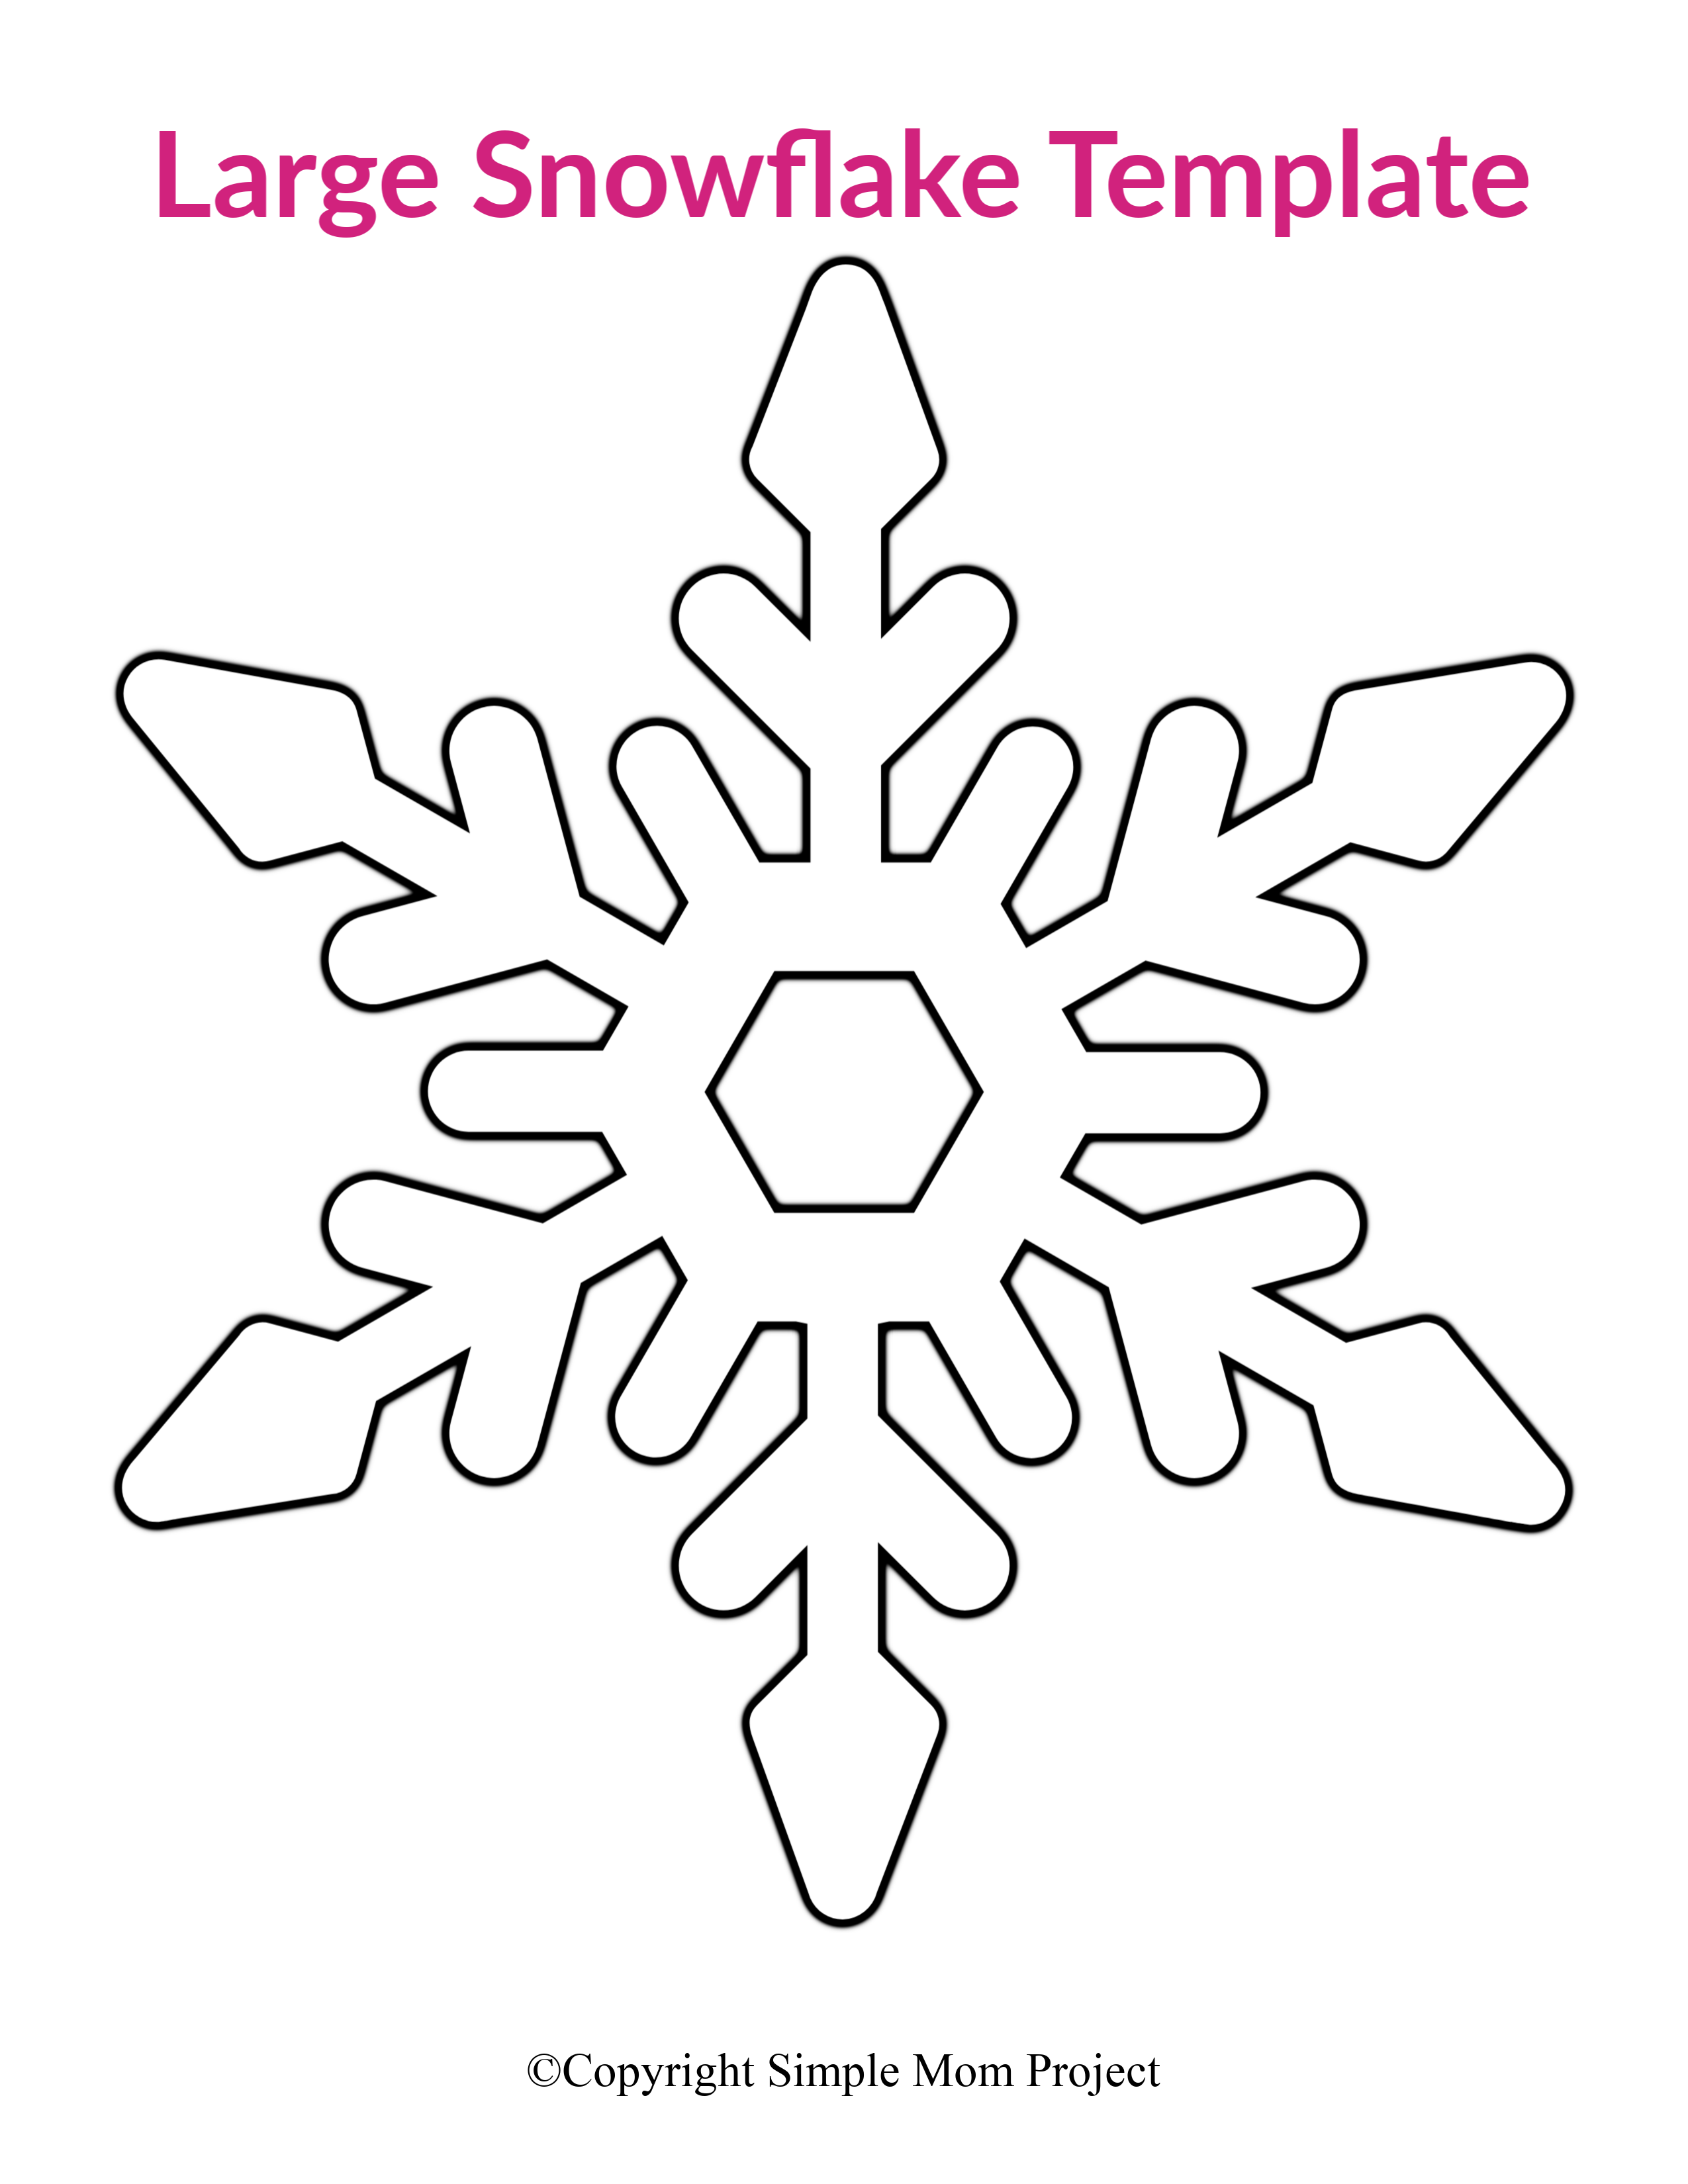 4 inch Snowflake Template-Printable Snowflake-Winter Crafts-Christmas Decor-Holiday Party-Classroom Decor-Kids Crafts-DIY Snowflake Cutout